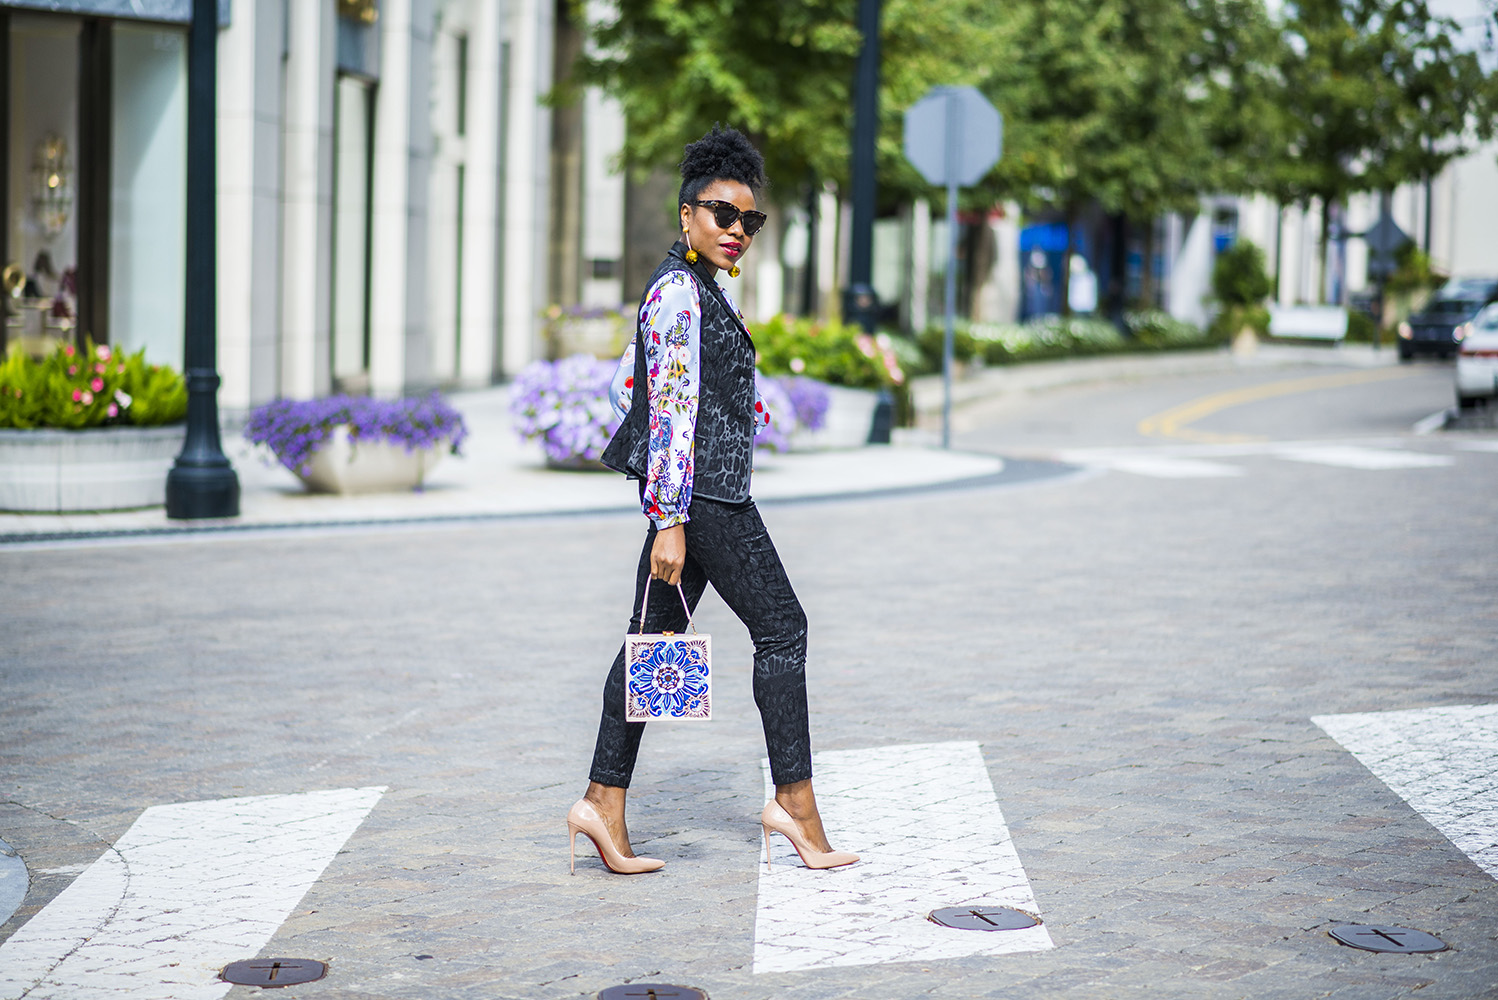 How to mix prints and textures for Fall featuring Hottie & Lord